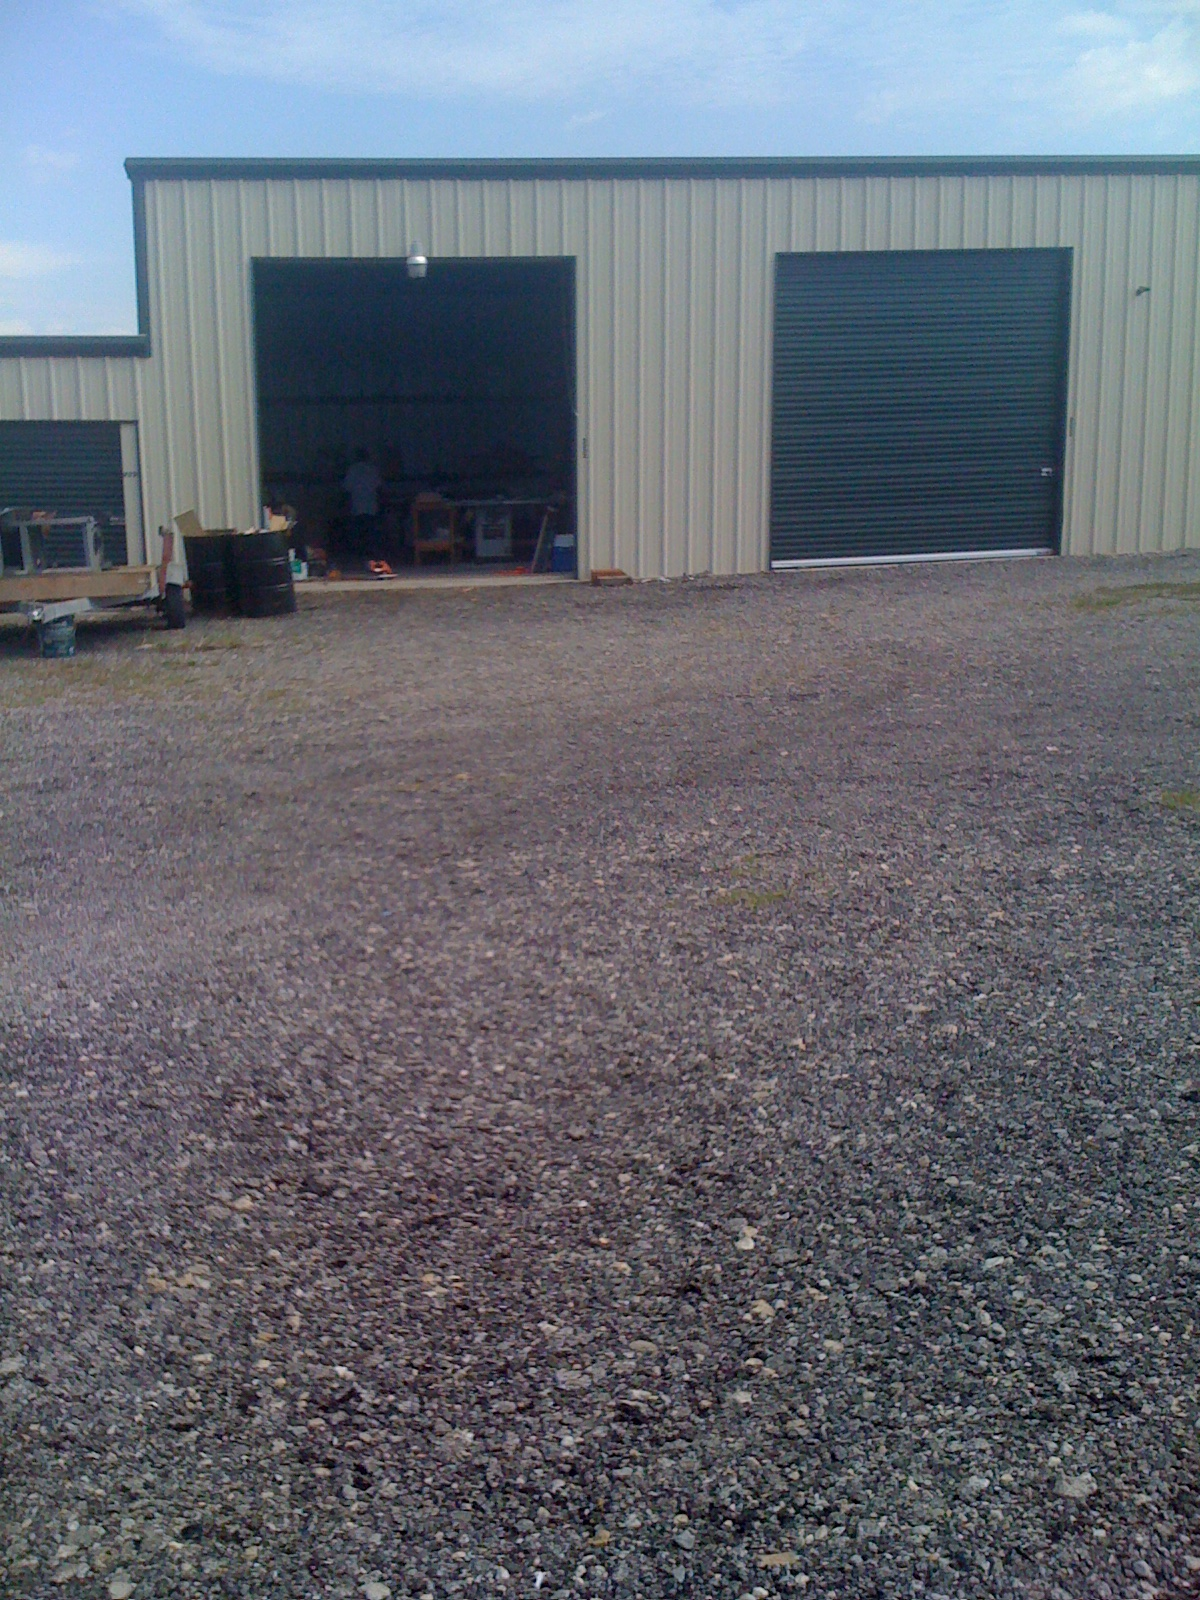 We have cheap storage for lawn furniture and other belongings.